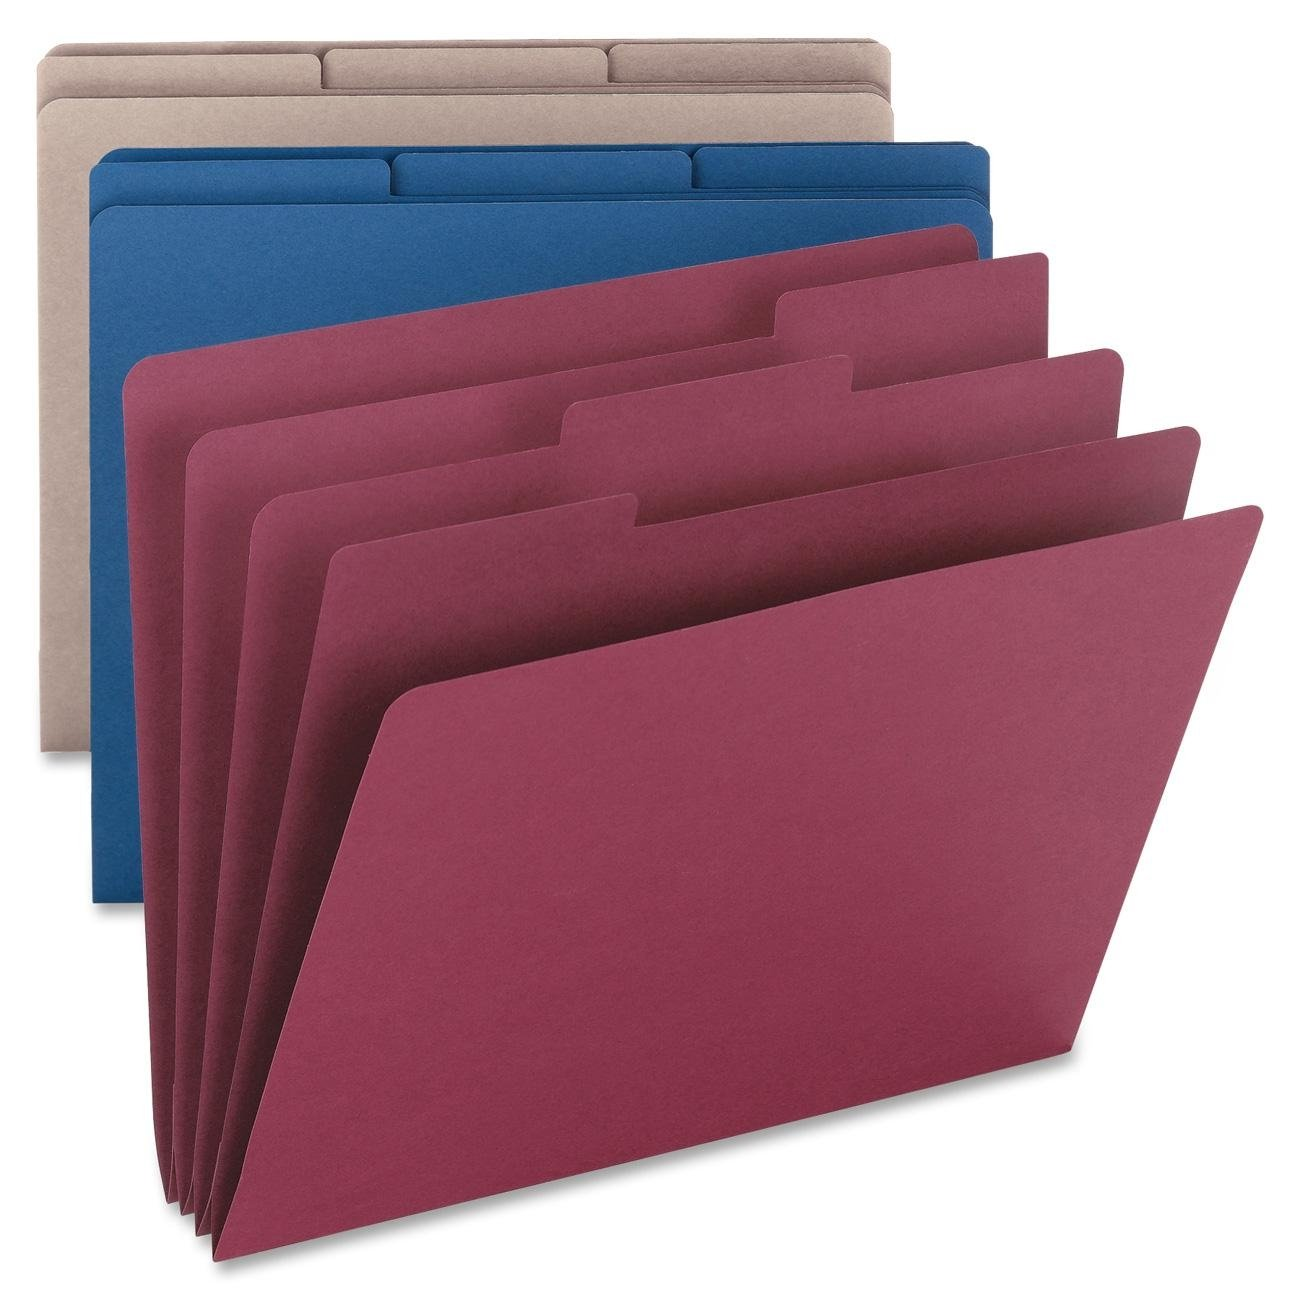 Smead Organizer Folder, Three 1/3-Cut Tabbed Dividers, Letter Size, Assorted Colors, 3 Per Pack (85785)